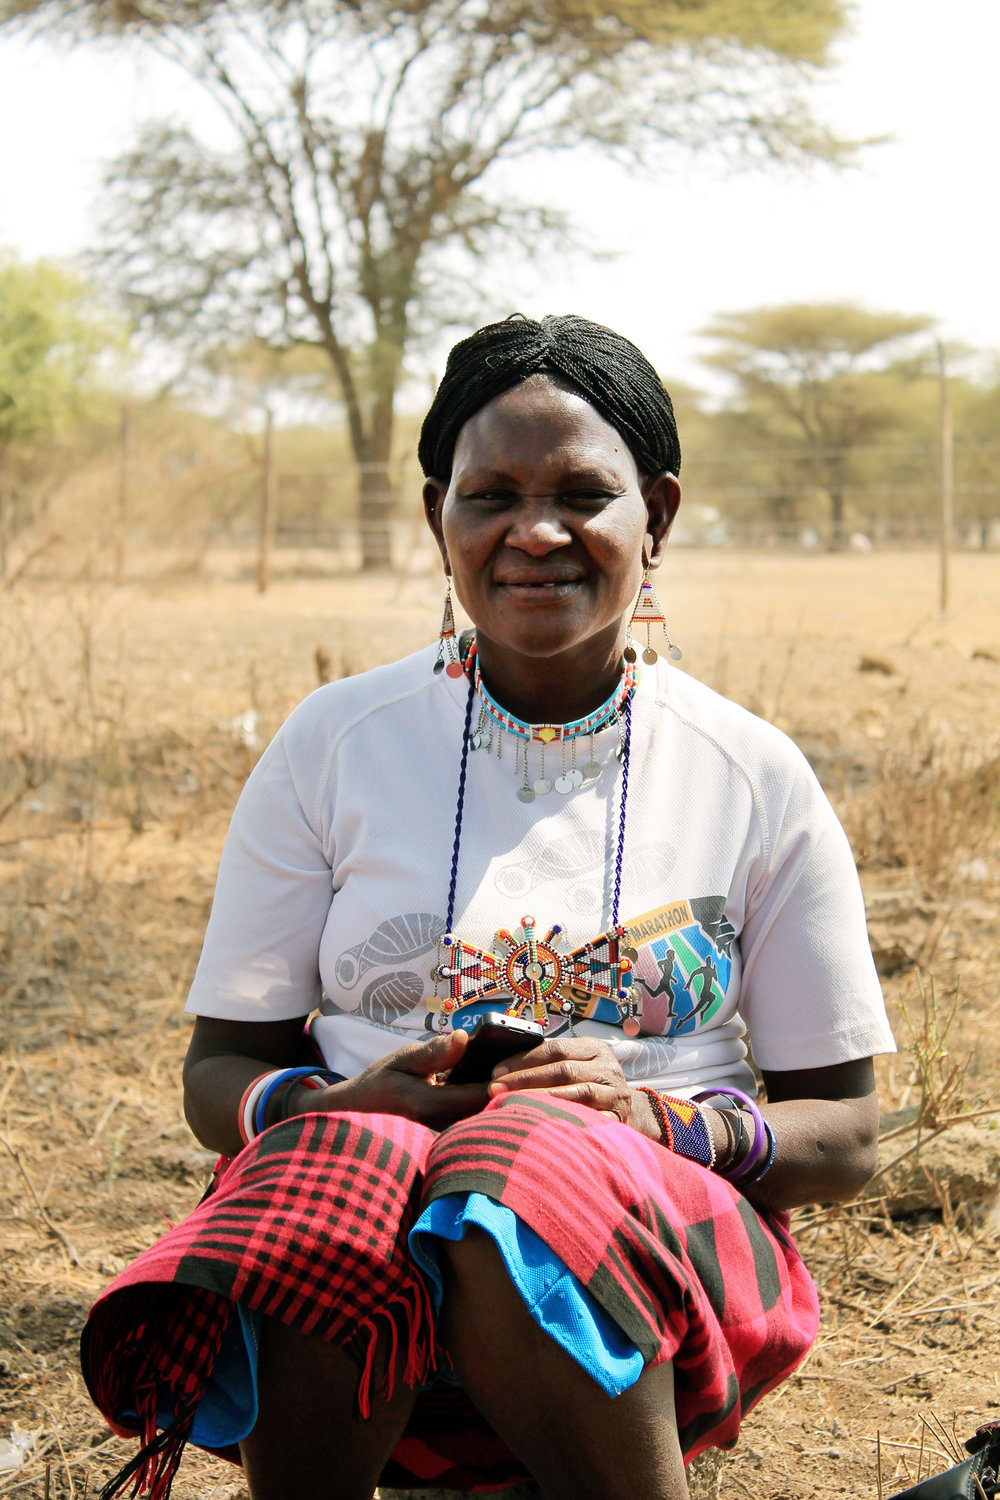 Namawe Sompol is a mother of two who works as a clinical health worker in the village of Illtalal near Kenya's Chyulu Hills. She has noticed a decline in fresh water available to her Maasai community in recent years. (© Conservation International/photo by Christina Ender)